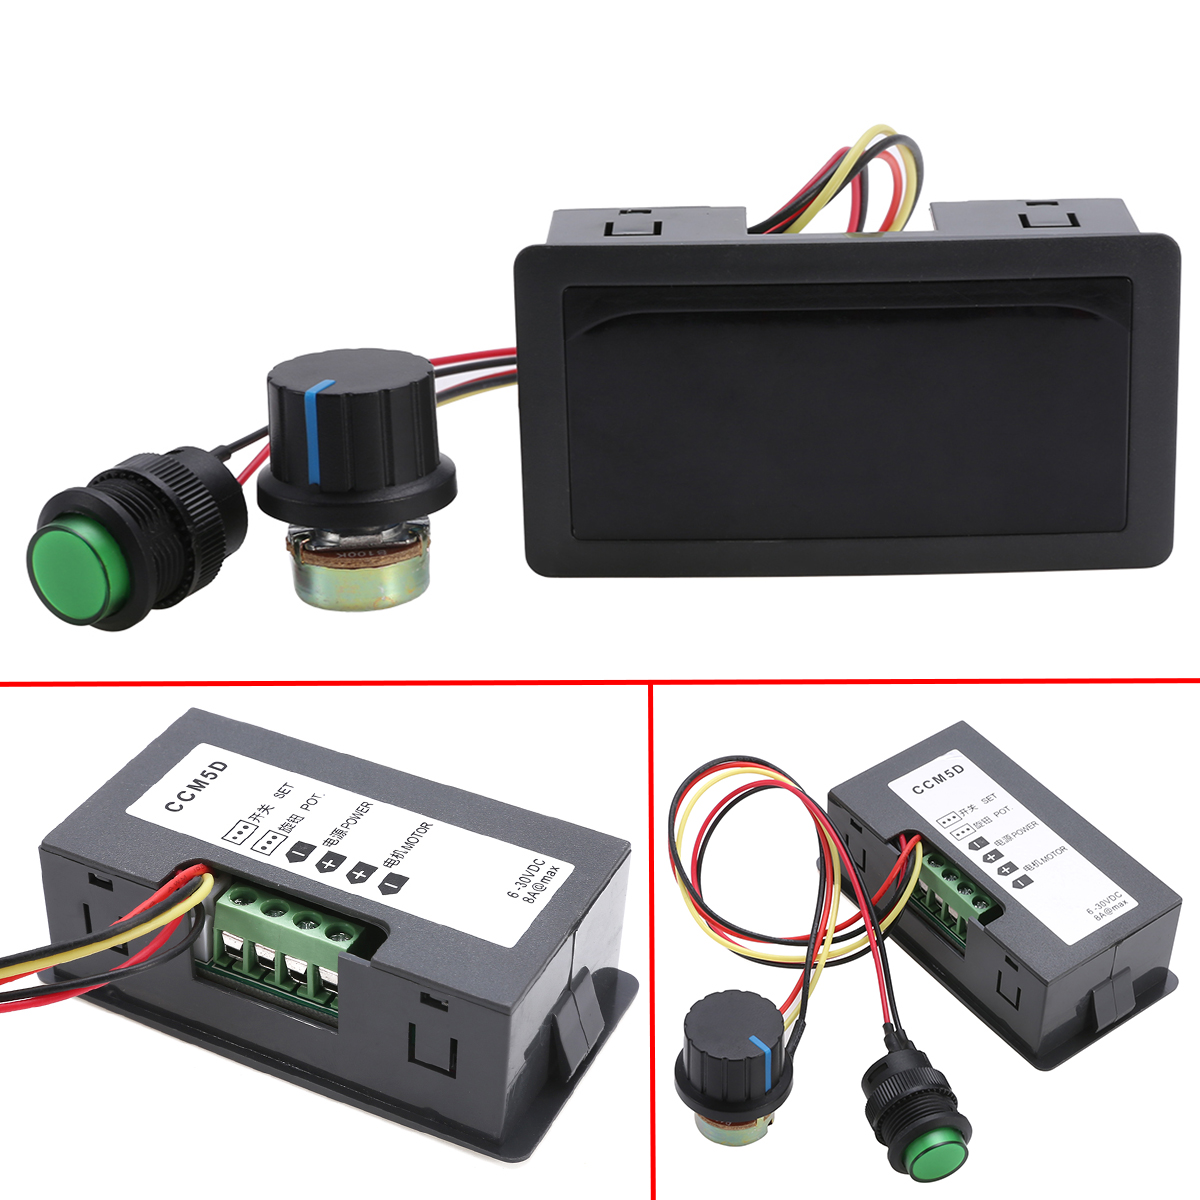 DC 6-30V 12V 24V DC 5A Motor Speed Control Regulator PWM Speed Controller With Digital Display Switch High Power Drive Module комплект постельного белья cotton life 1 5 сп smart лиловый 6120